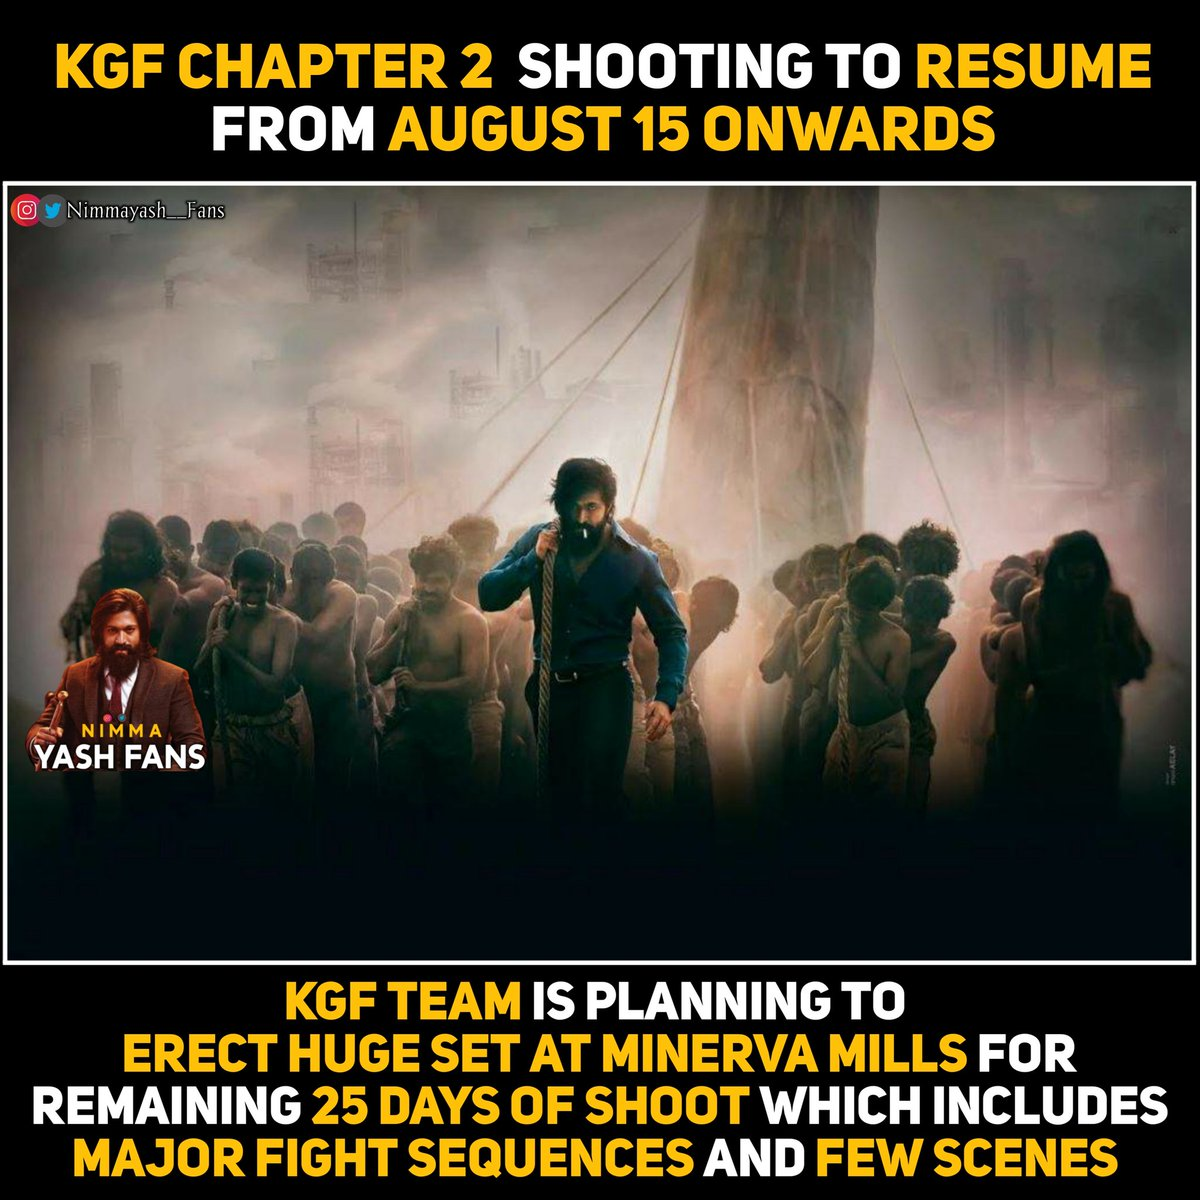 #KGFChapter2 Shooting Resume From August 15 Onwards.. Keeping Promotions and other factors Release date may be postponed  Follow :- @nimmayash__fans Follow :- @nimmayash__fans #yash #YashBoss #SpreadYASHism #KGFChapter2 #KGF2 #Adheera #KGF #karthikgowda #PrashanthNeel #ROCKYpic.twitter.com/rgnnhcdzyO